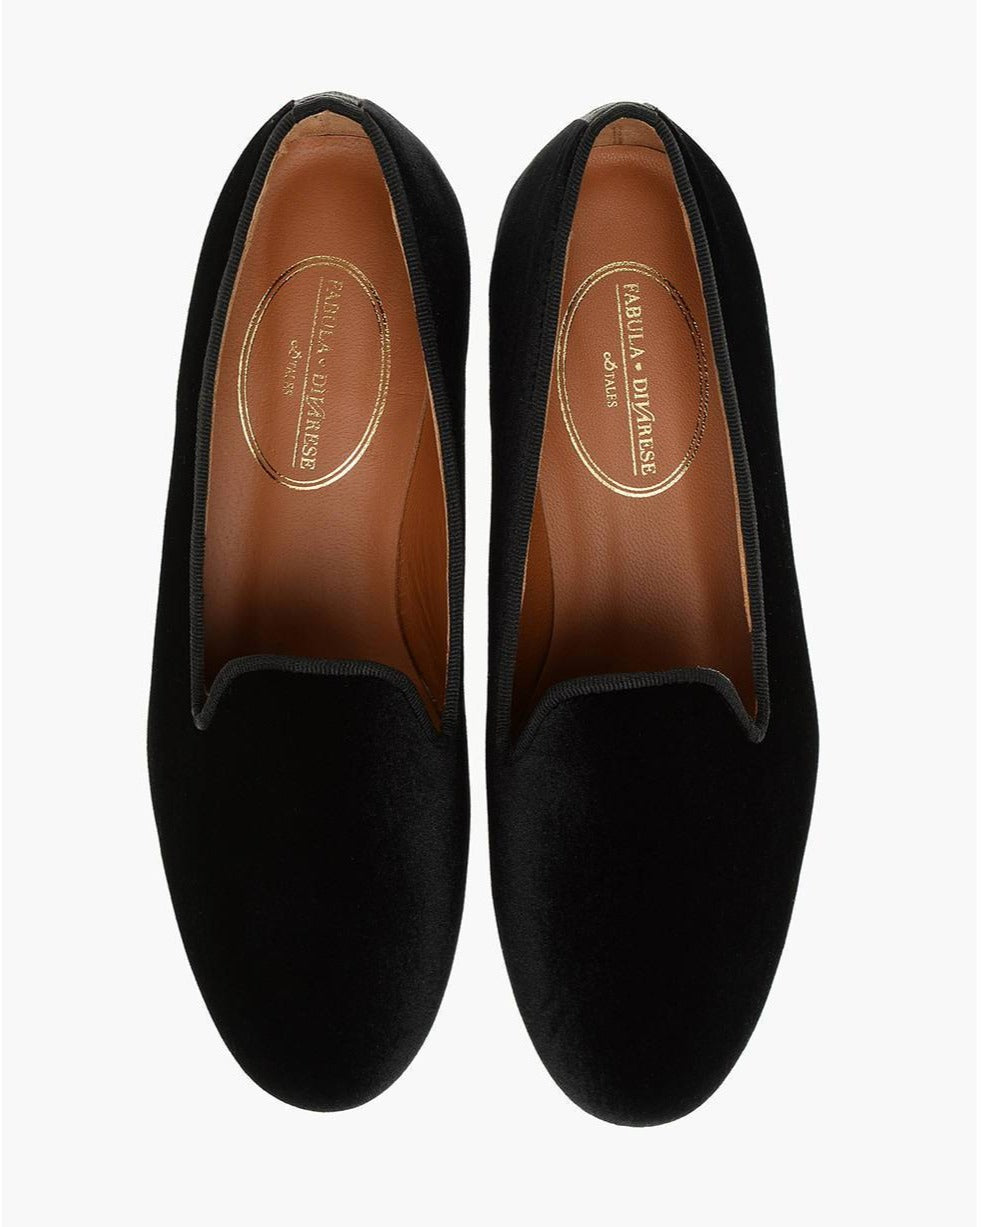 velvet slippers women